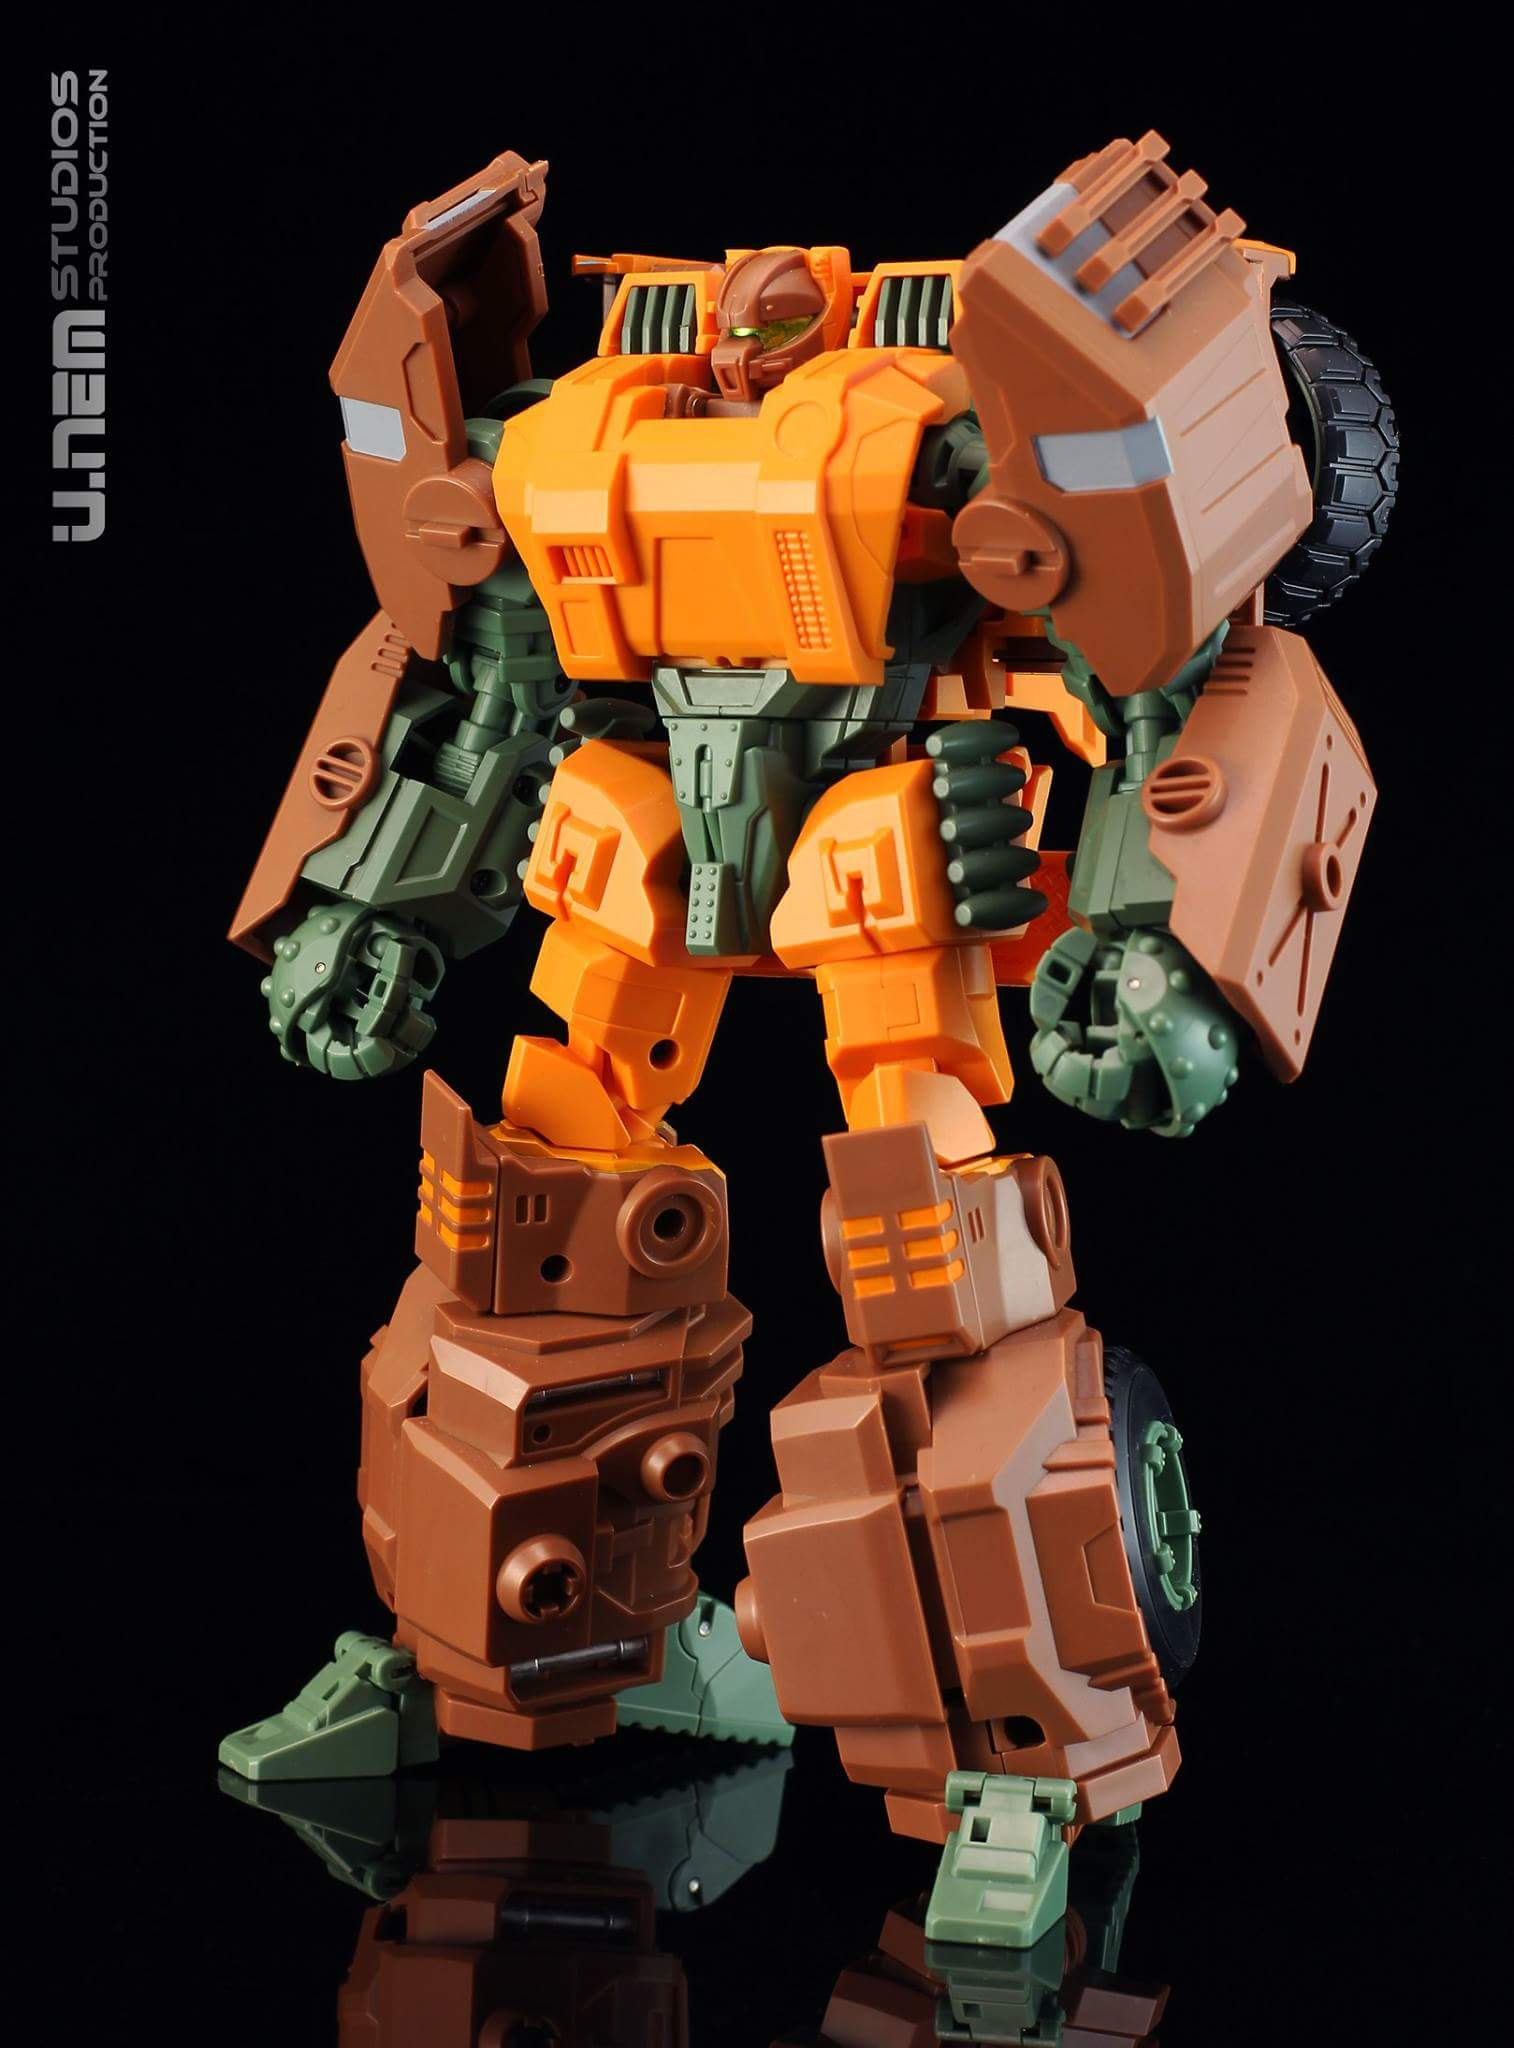 [Mastermind Creations] Produit Tiers - R-23 Dicamus - aka Roadbuster/Cahot des Wreckers IDW F12rntO0